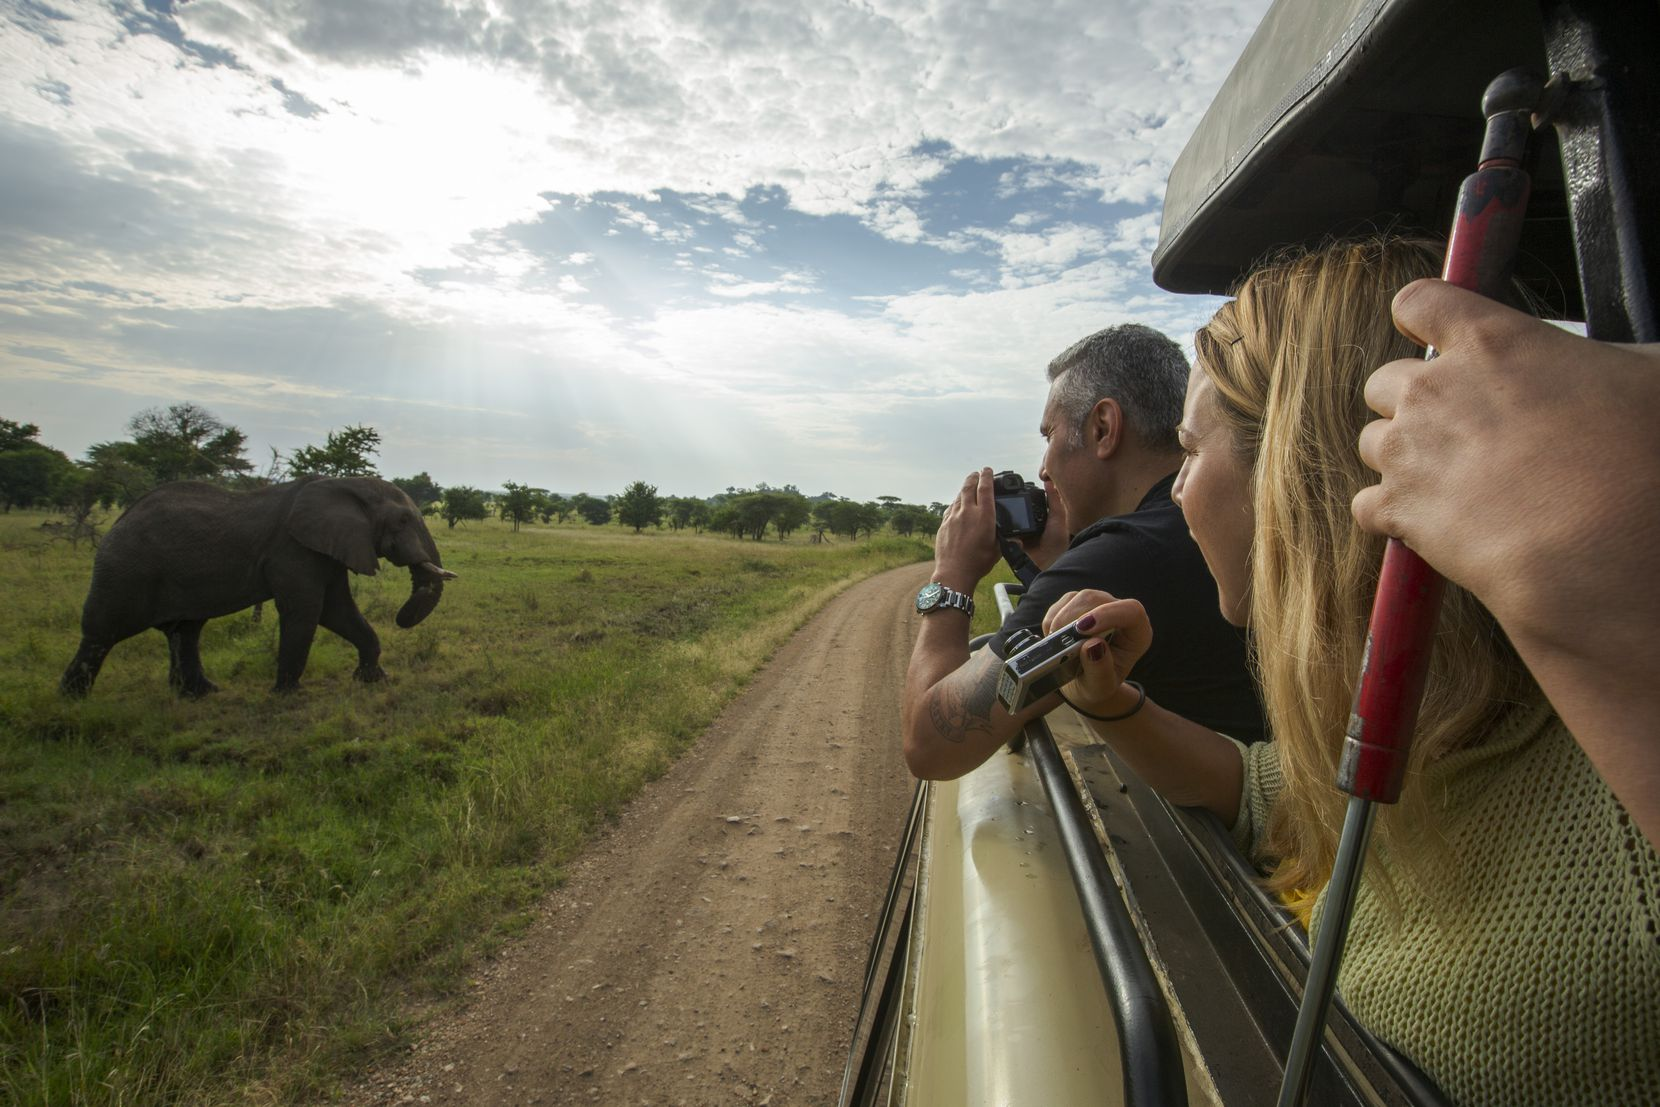 Elephants and other wildlife keep the camera shutters clicking at Serengeti National Park.